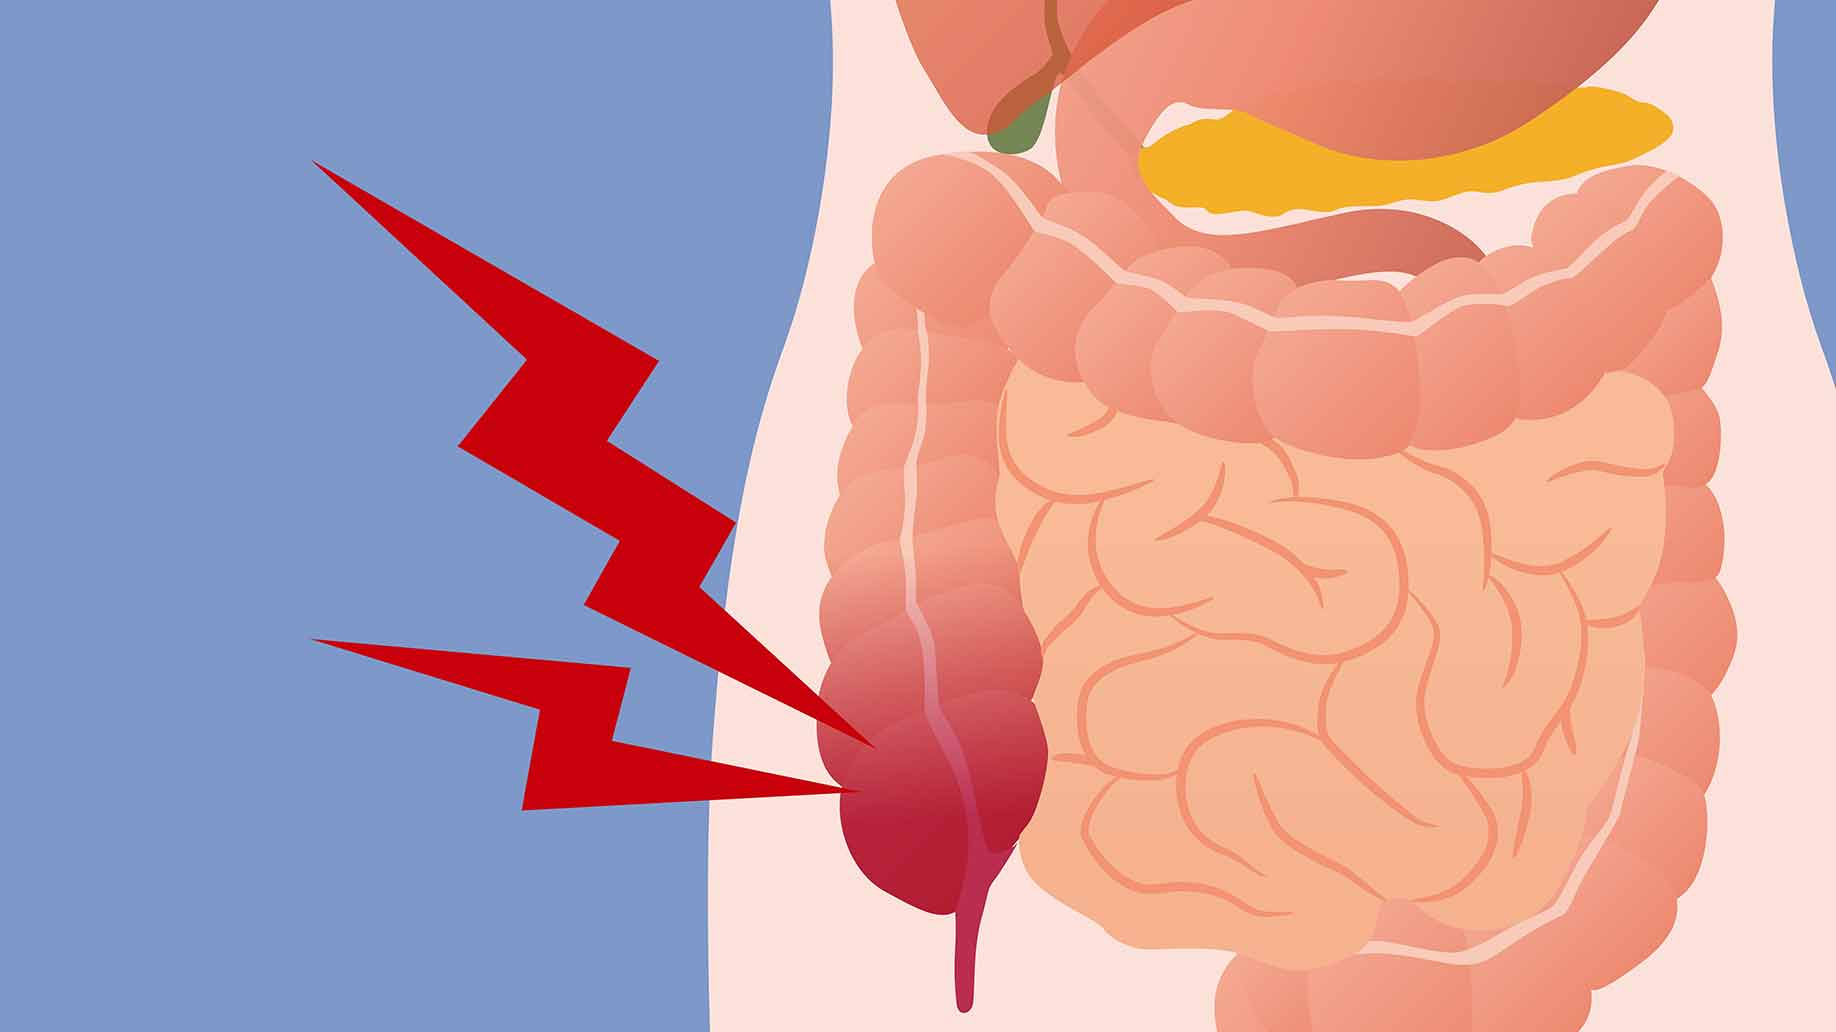 What to do if you need to clean the stomach and sides urgently